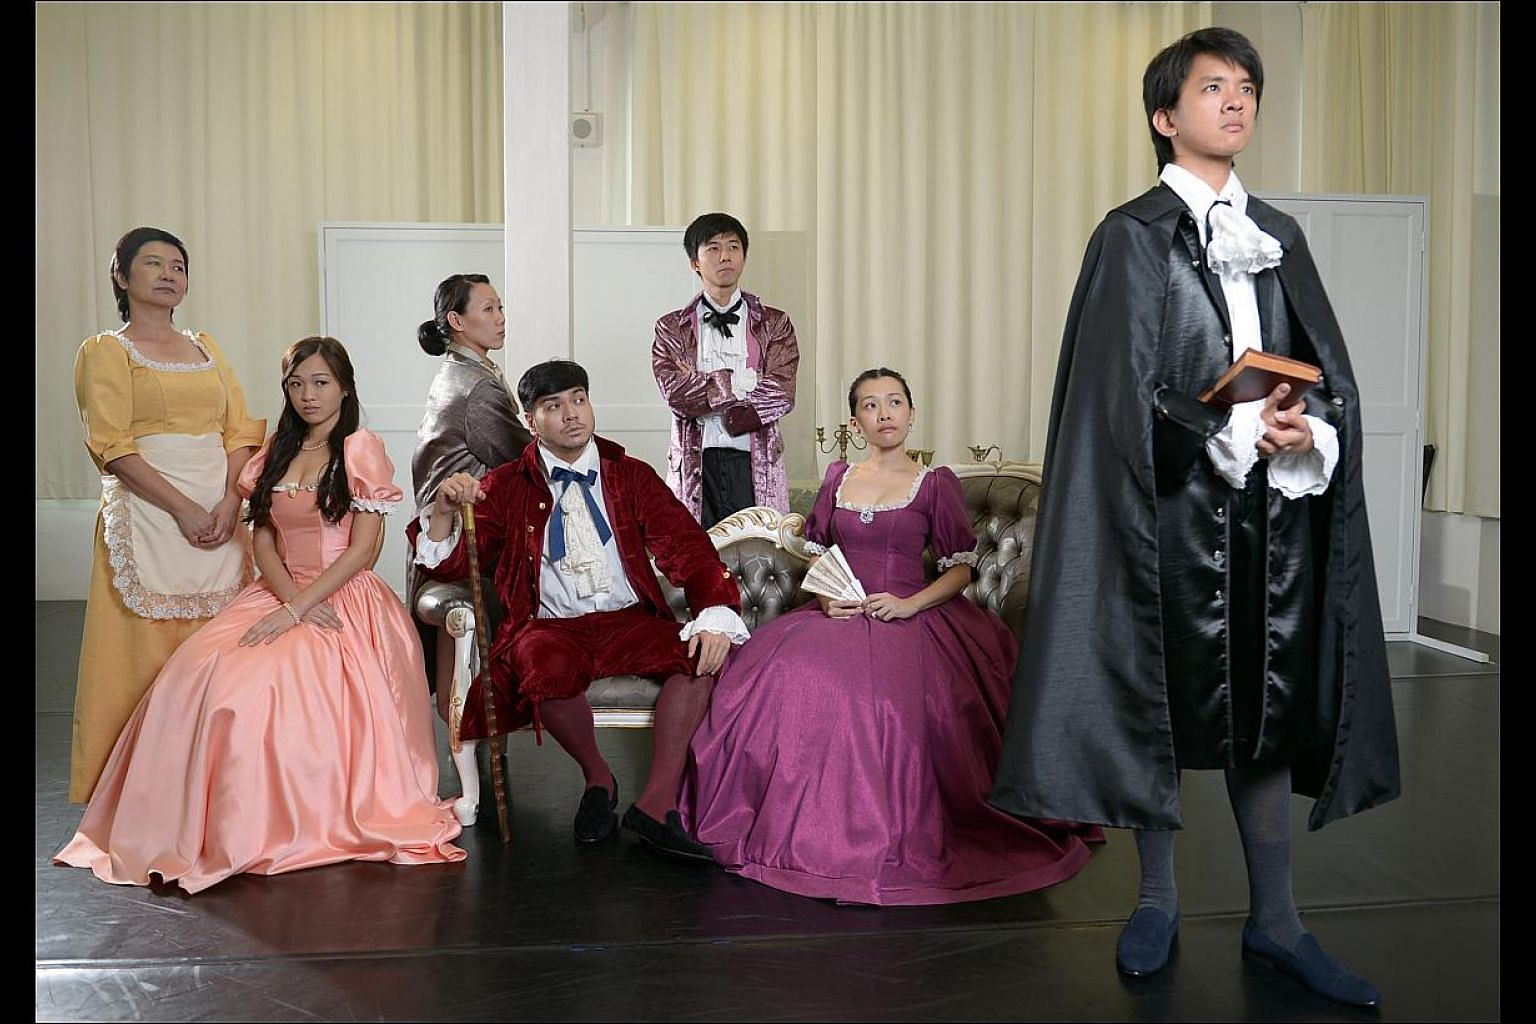 The cast of Tartuffe at a dress rehearsal (from far left) Jalyn Han, Jean Toh, Koh Wan Ching, Darius Tan, Neo Hai Bin, Mia Chee and Hang Qian Chou. -- ST PHOTO: DESMOND WEE